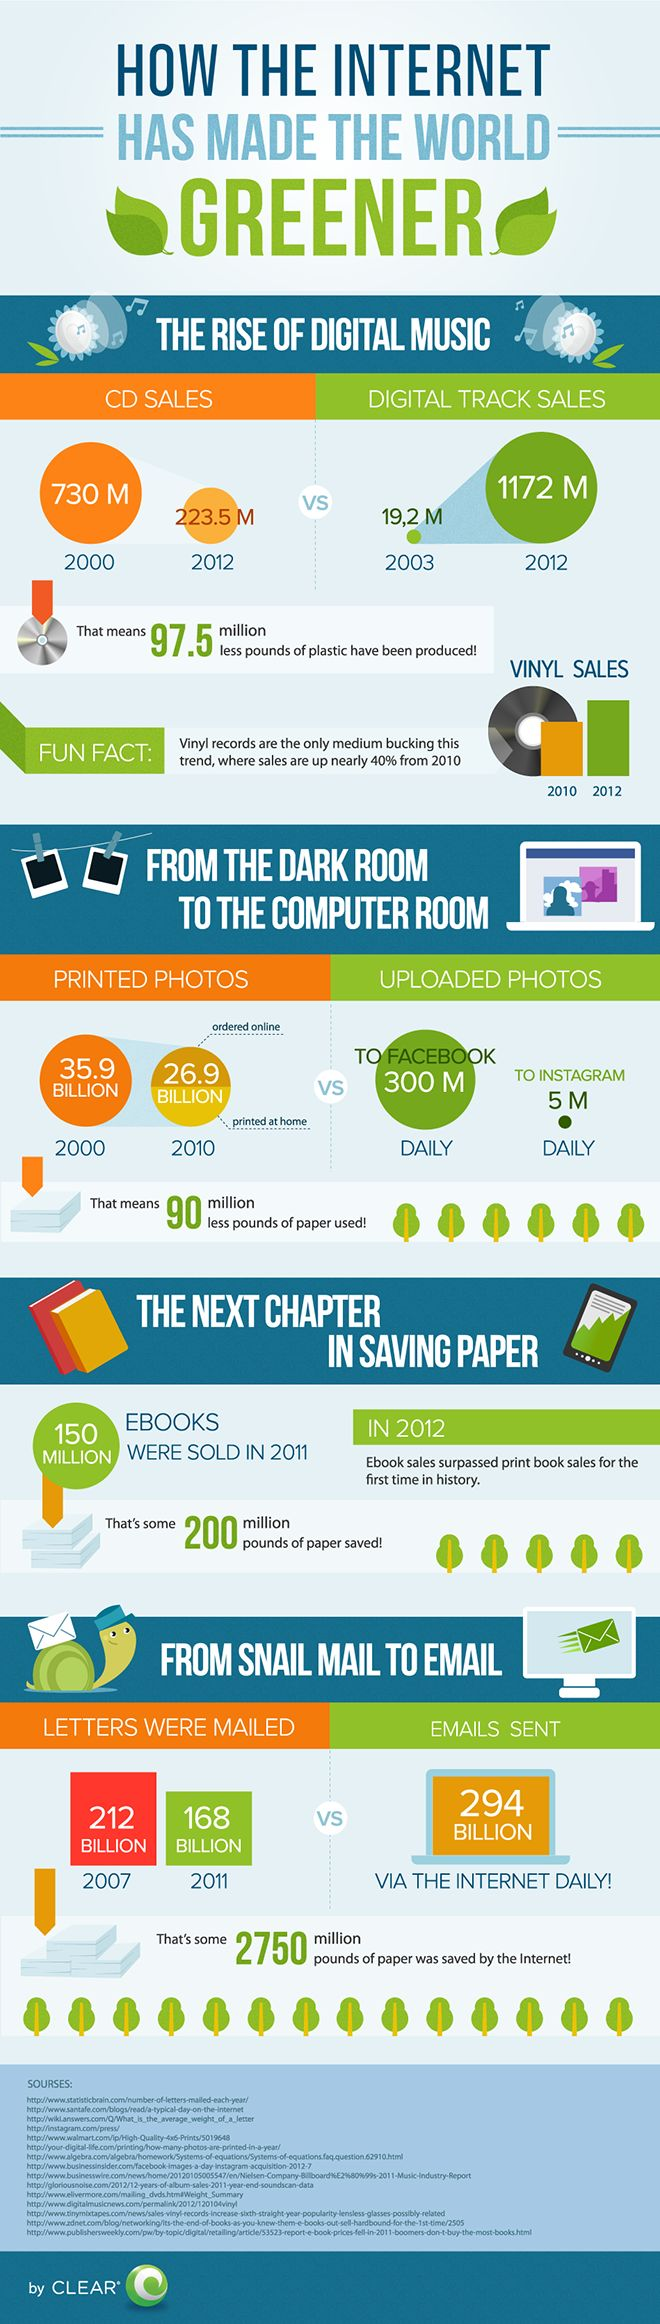 This is How Internet has Made the World Greener